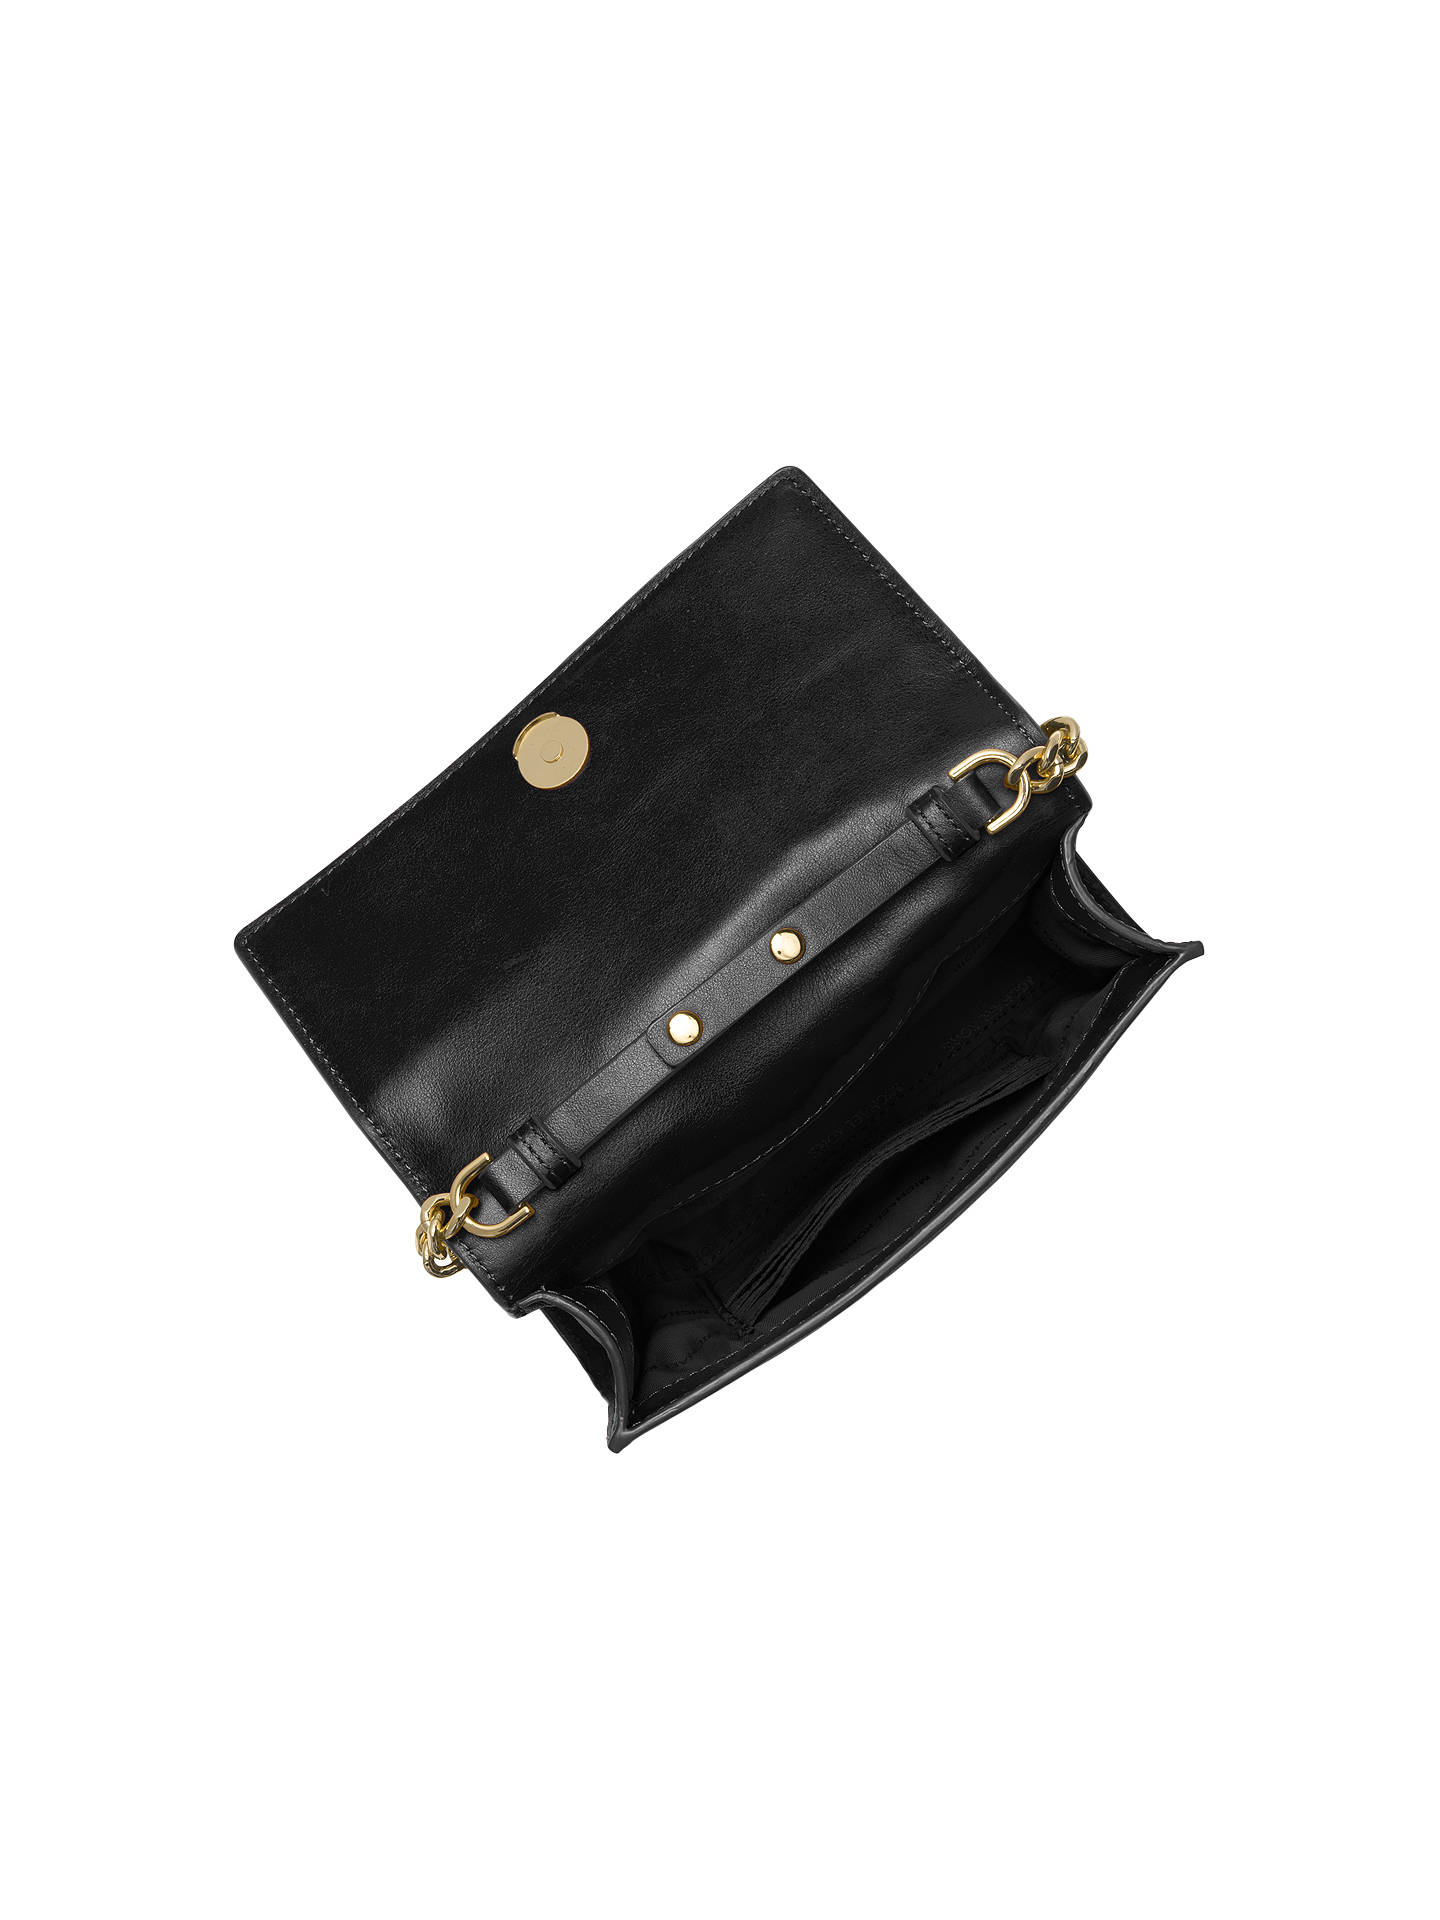 9dc12bae8108 ... Buy MICHAEL Michael Kors Ruby Leather 'Love' Clutch Bag, Black Online  at johnlewis ...